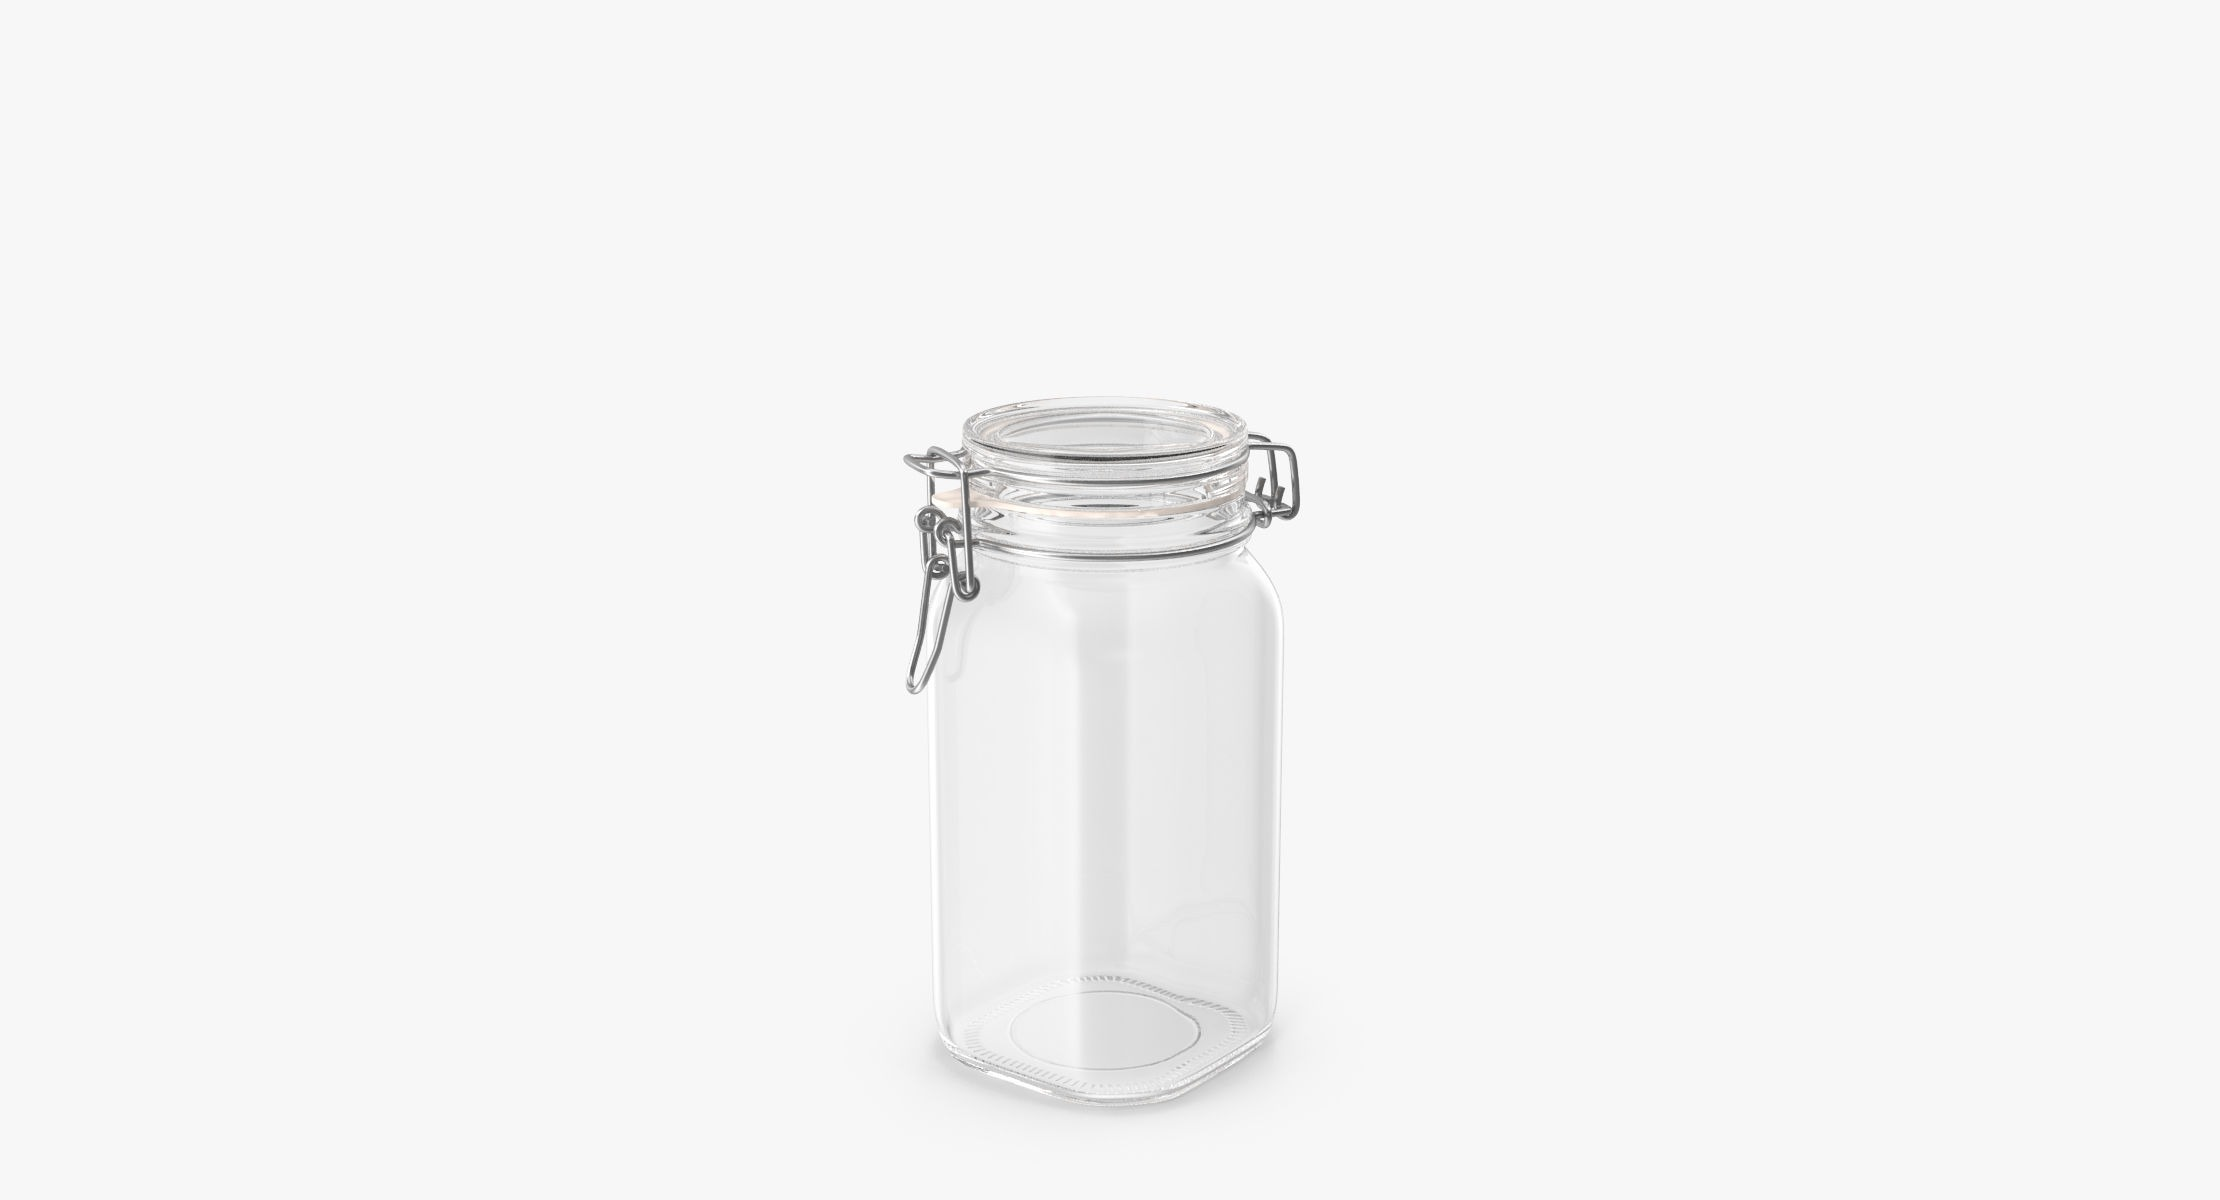 Hinged Glass Kitchen Jars 01 - reel 2